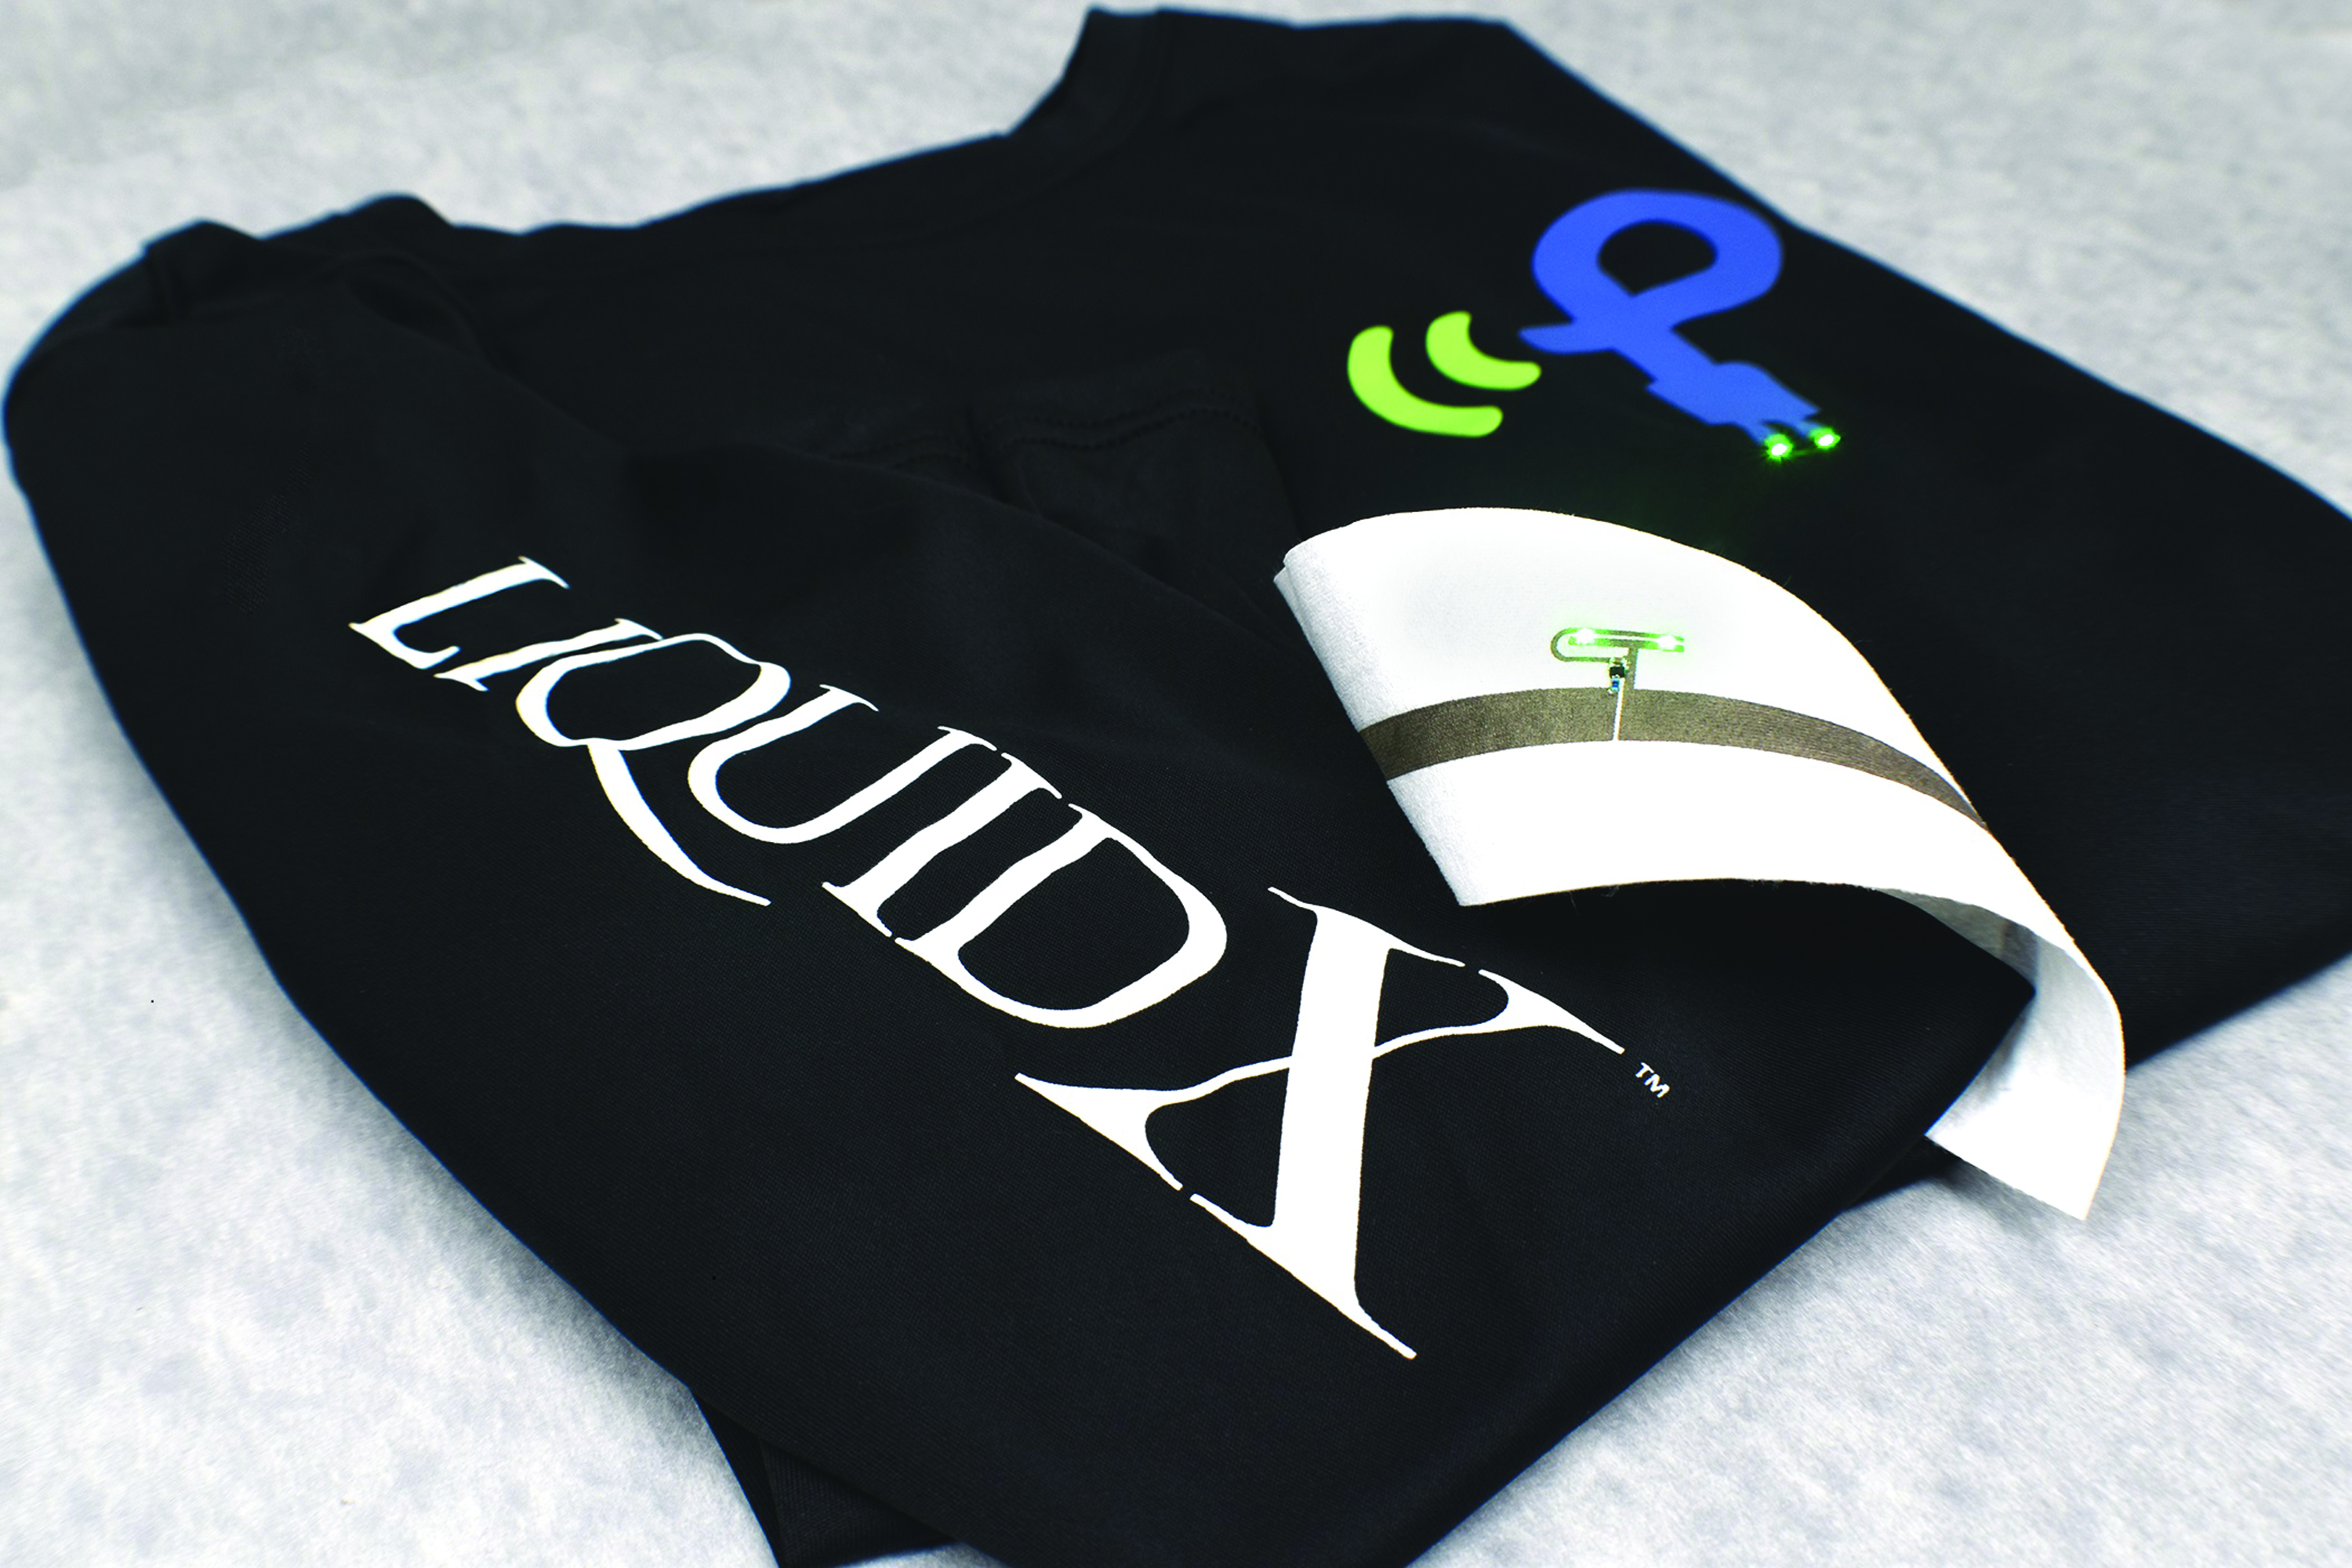 Conductive inks for smart wearables